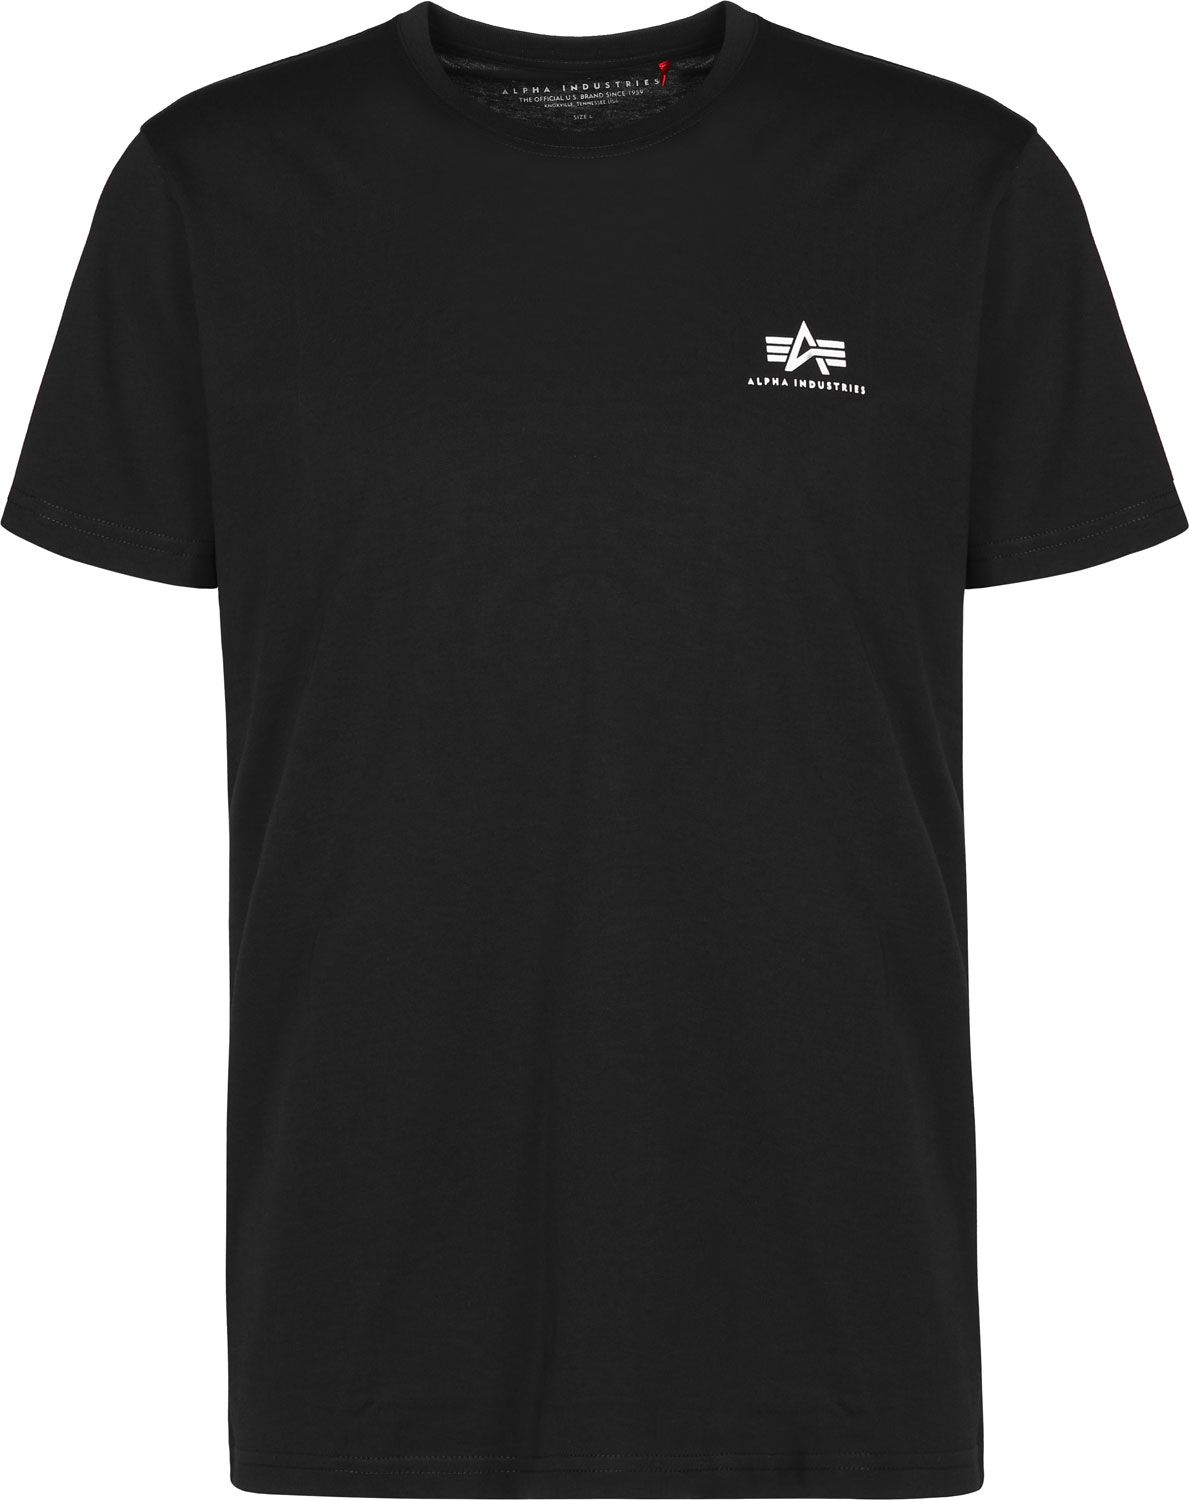 Alpha Industries triko Basic T Small Logo černé - Etappa